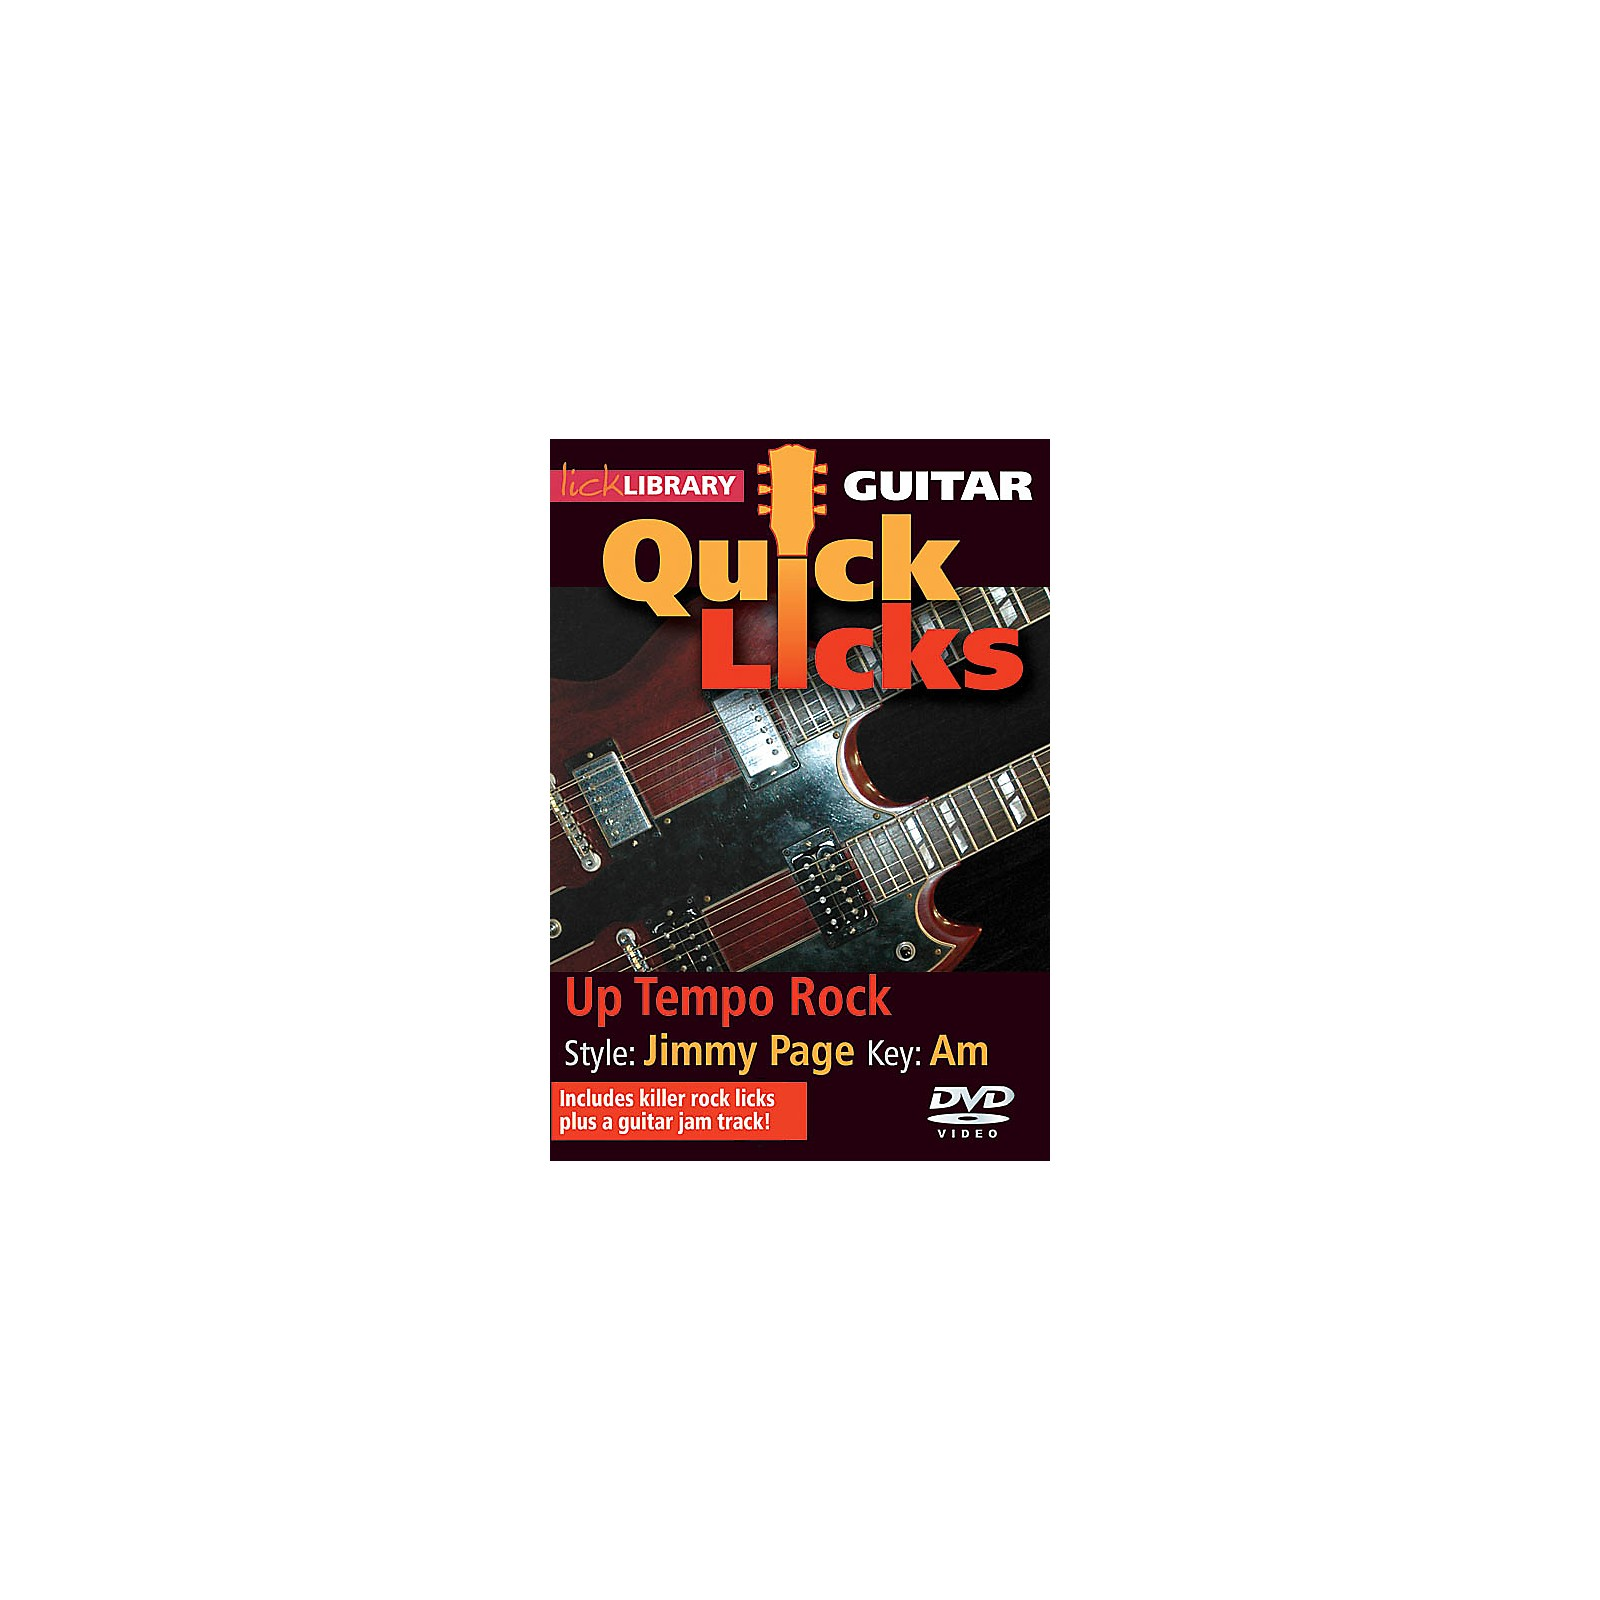 Licklibrary Up Tempo Rock - Quick Licks (Style: Jimmy Page; Key: Am) Lick Library Series DVD Written by Danny Gill